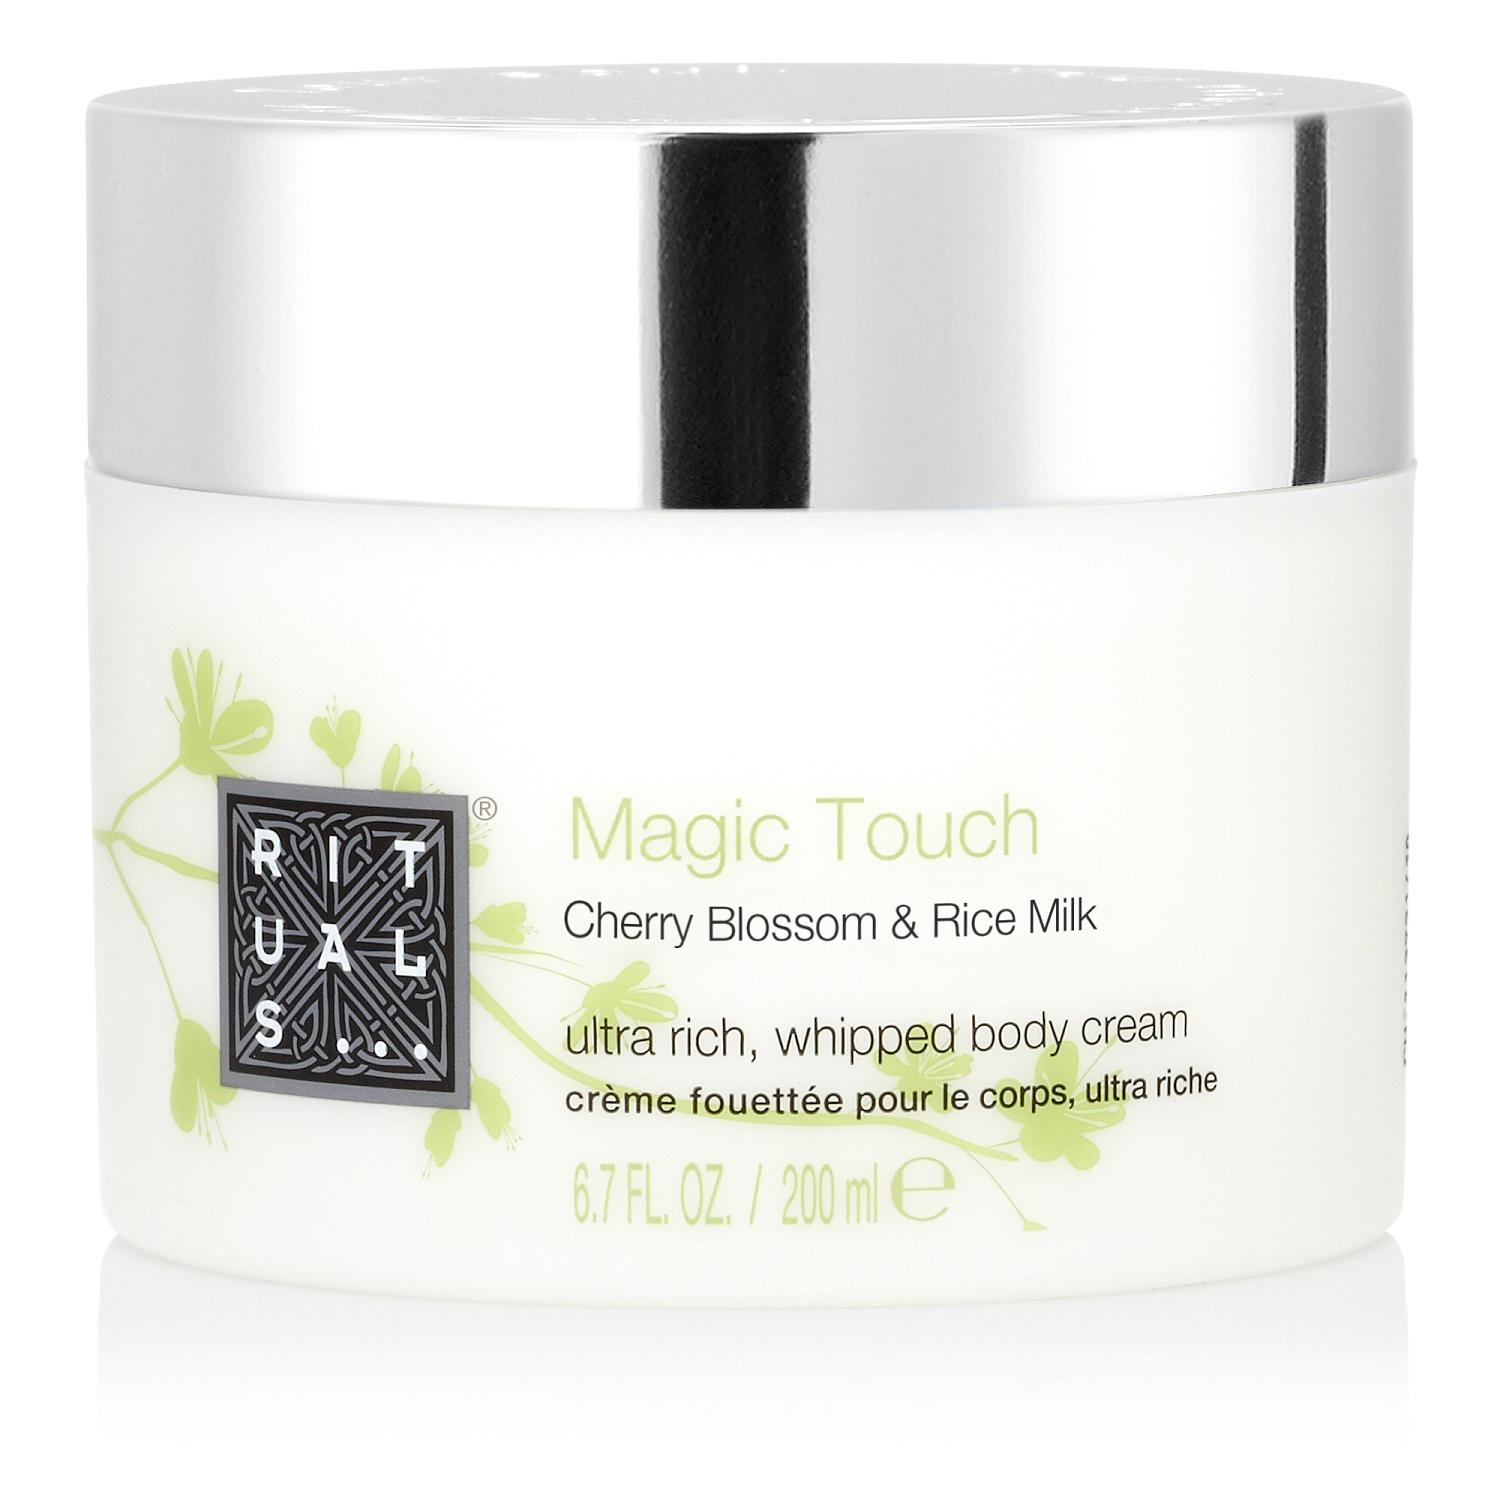 Afbeeldingsresultaat voor rituals body butter magic touch